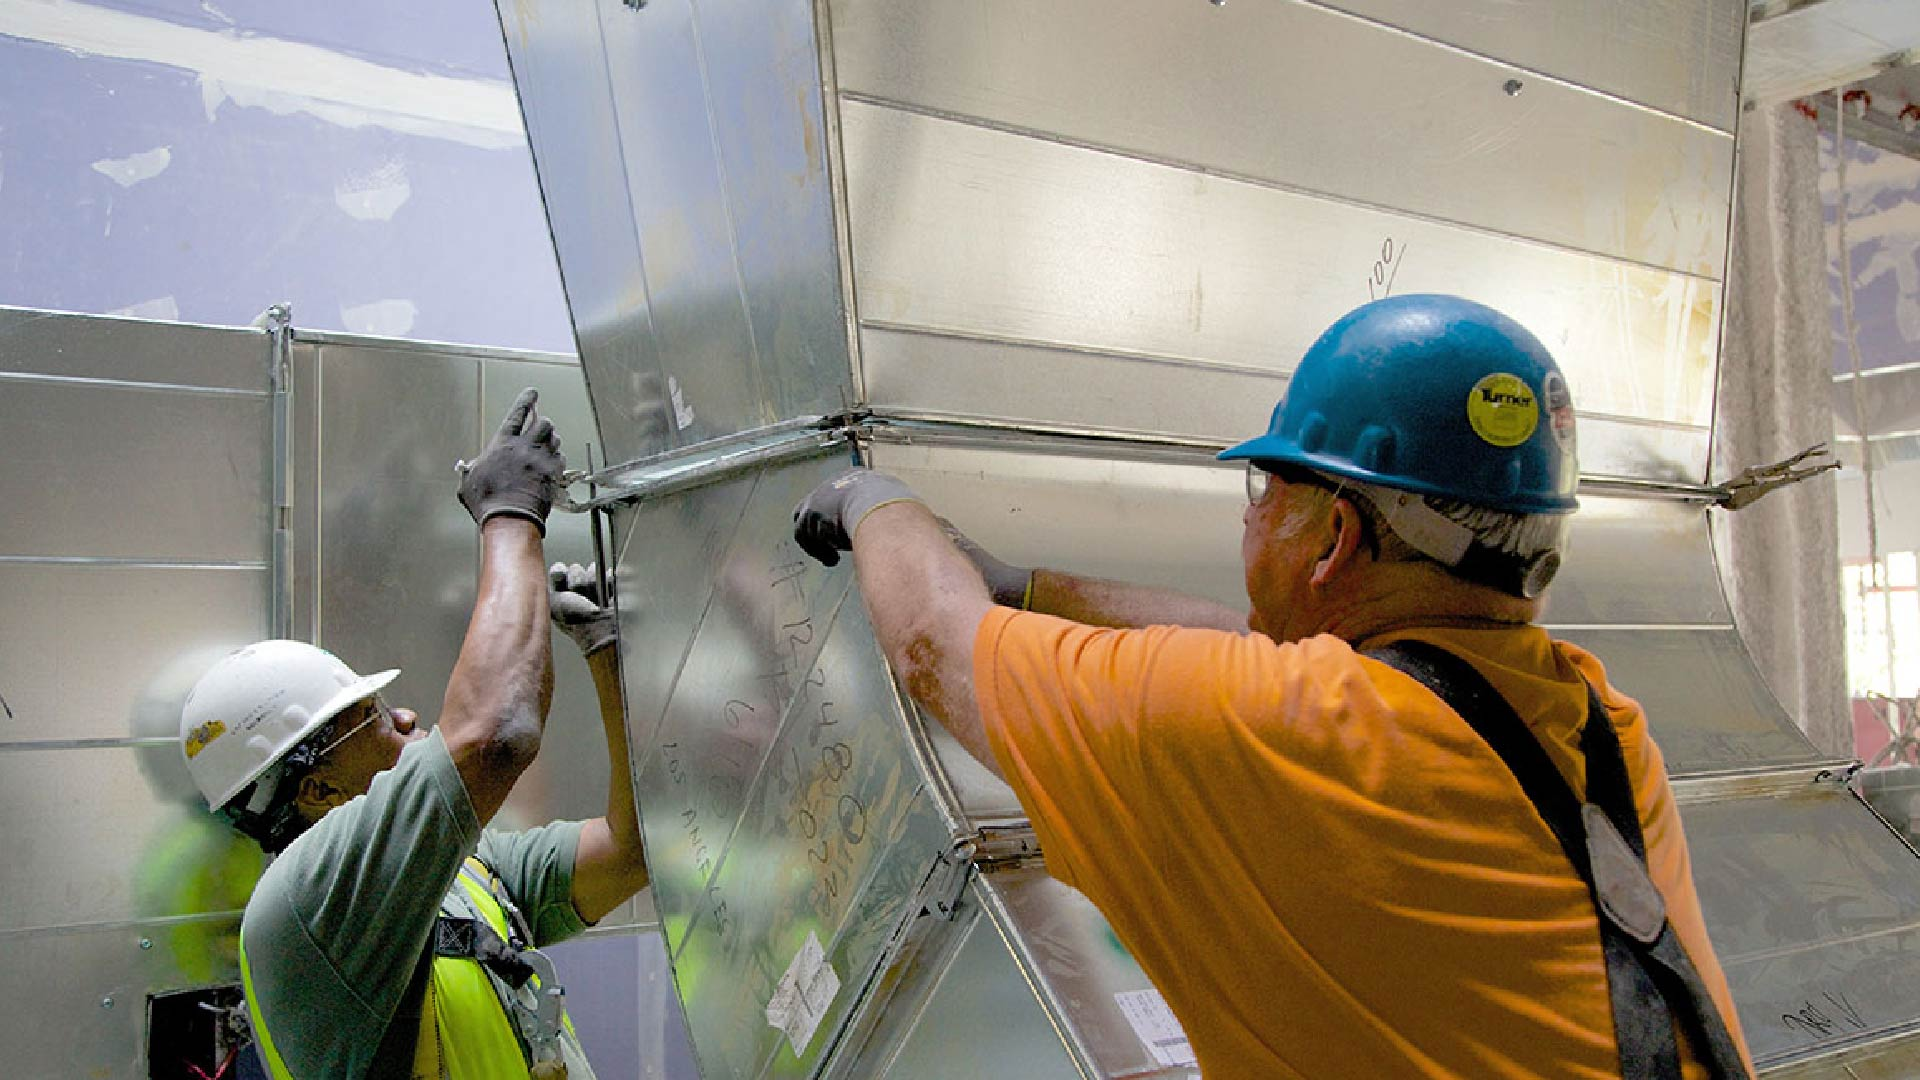 Fiber Duct Board Cleaning & Sanitation | S & R Air Duct Cleaning Services